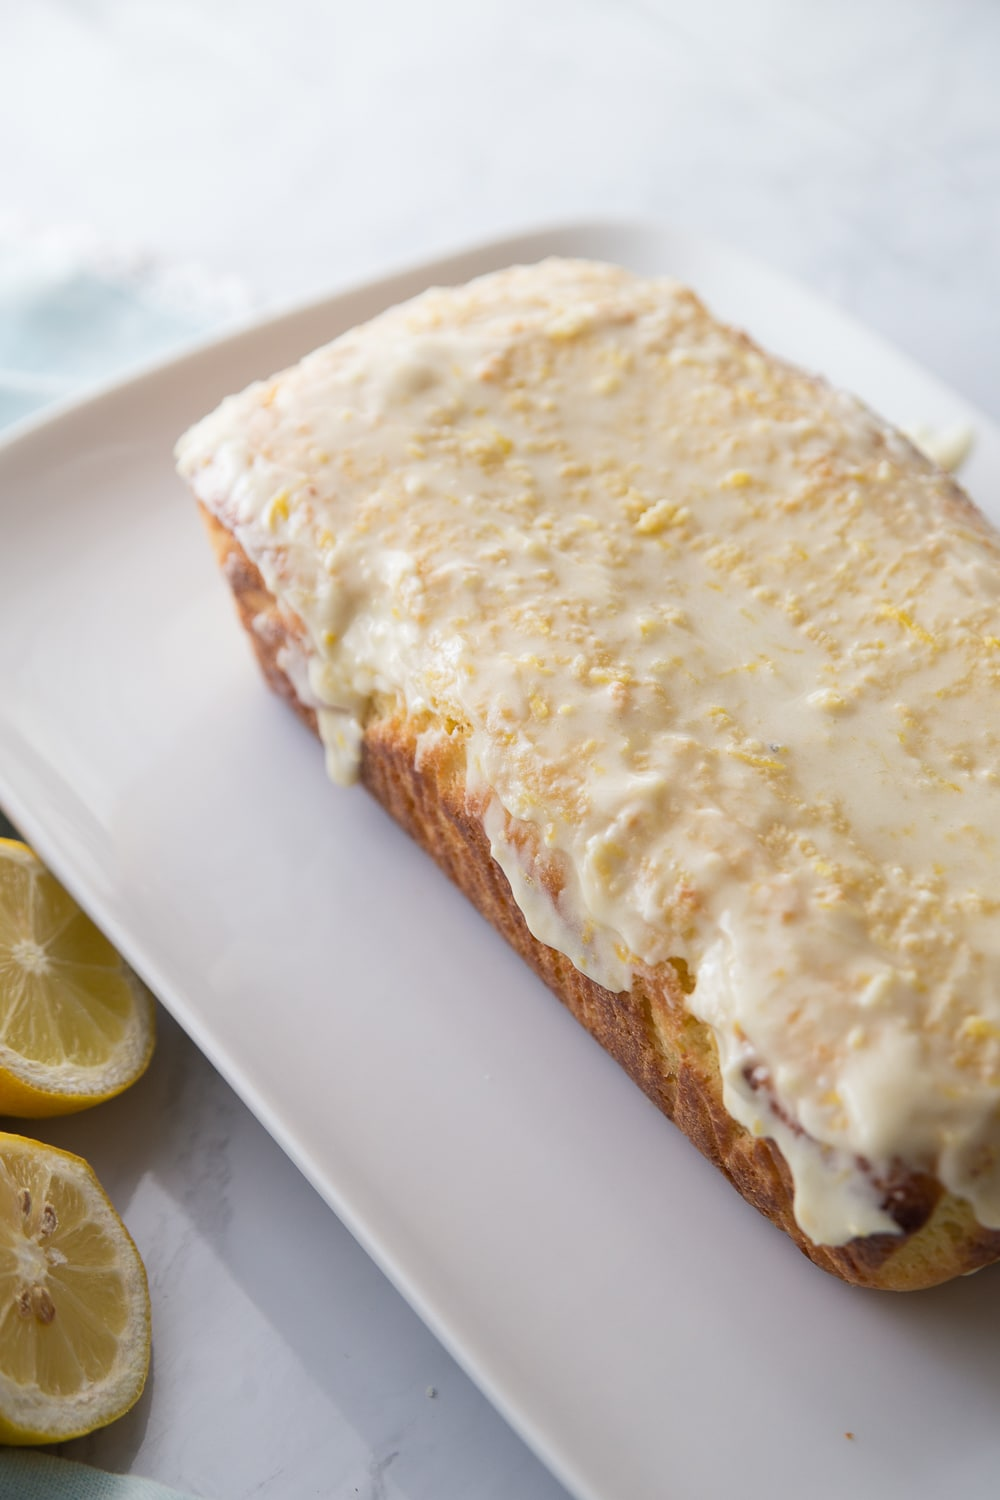 This Keto Lemon Bread recipe reminds me of Starbucks glazed lemon bread, but with a fraction of the carbs. #keto #lowcarb